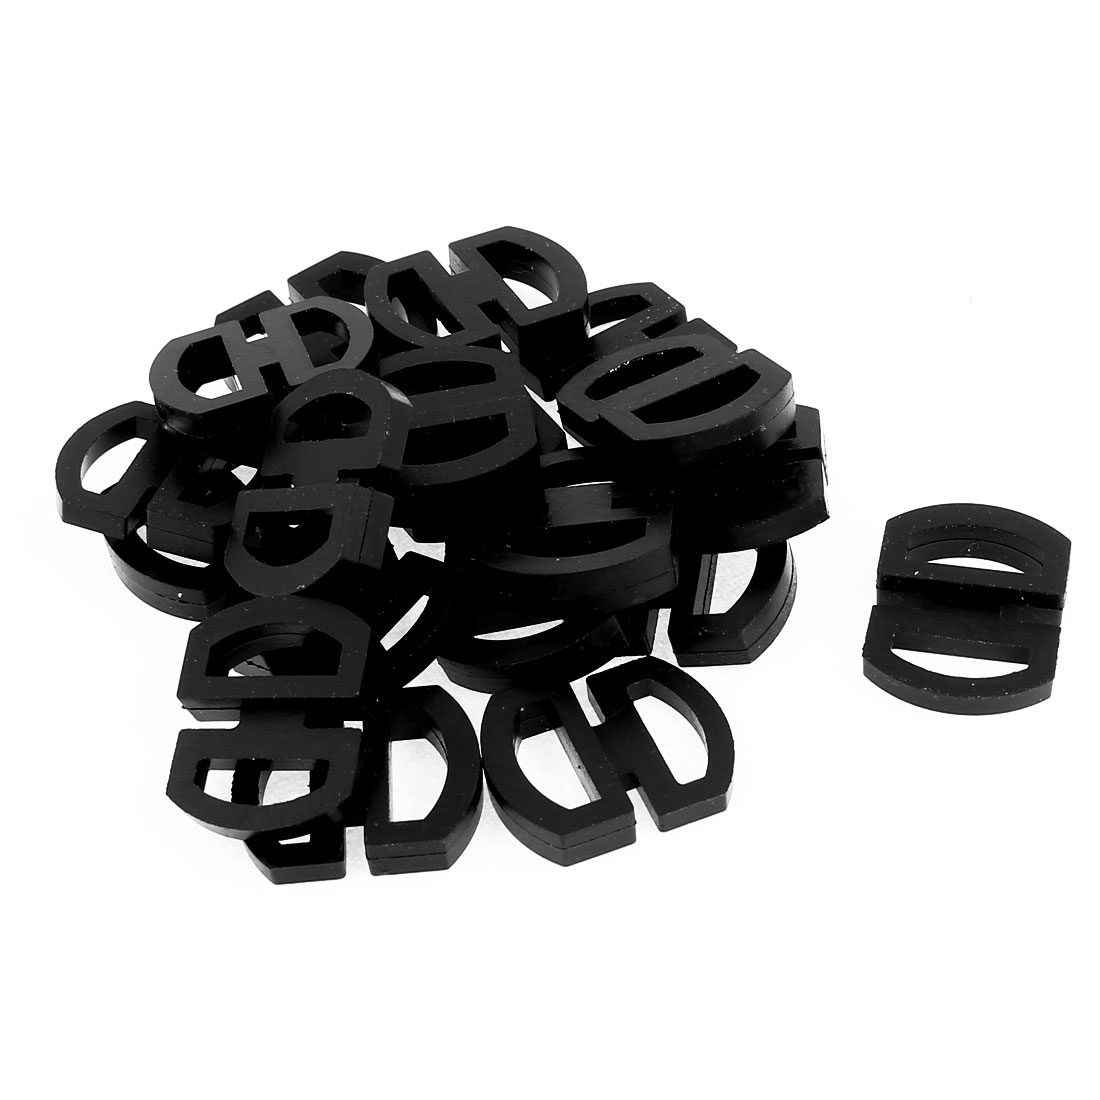 20Pcs 25 x 20mm Black Industrial Rubber Sealing Ring in Watermelon Shape